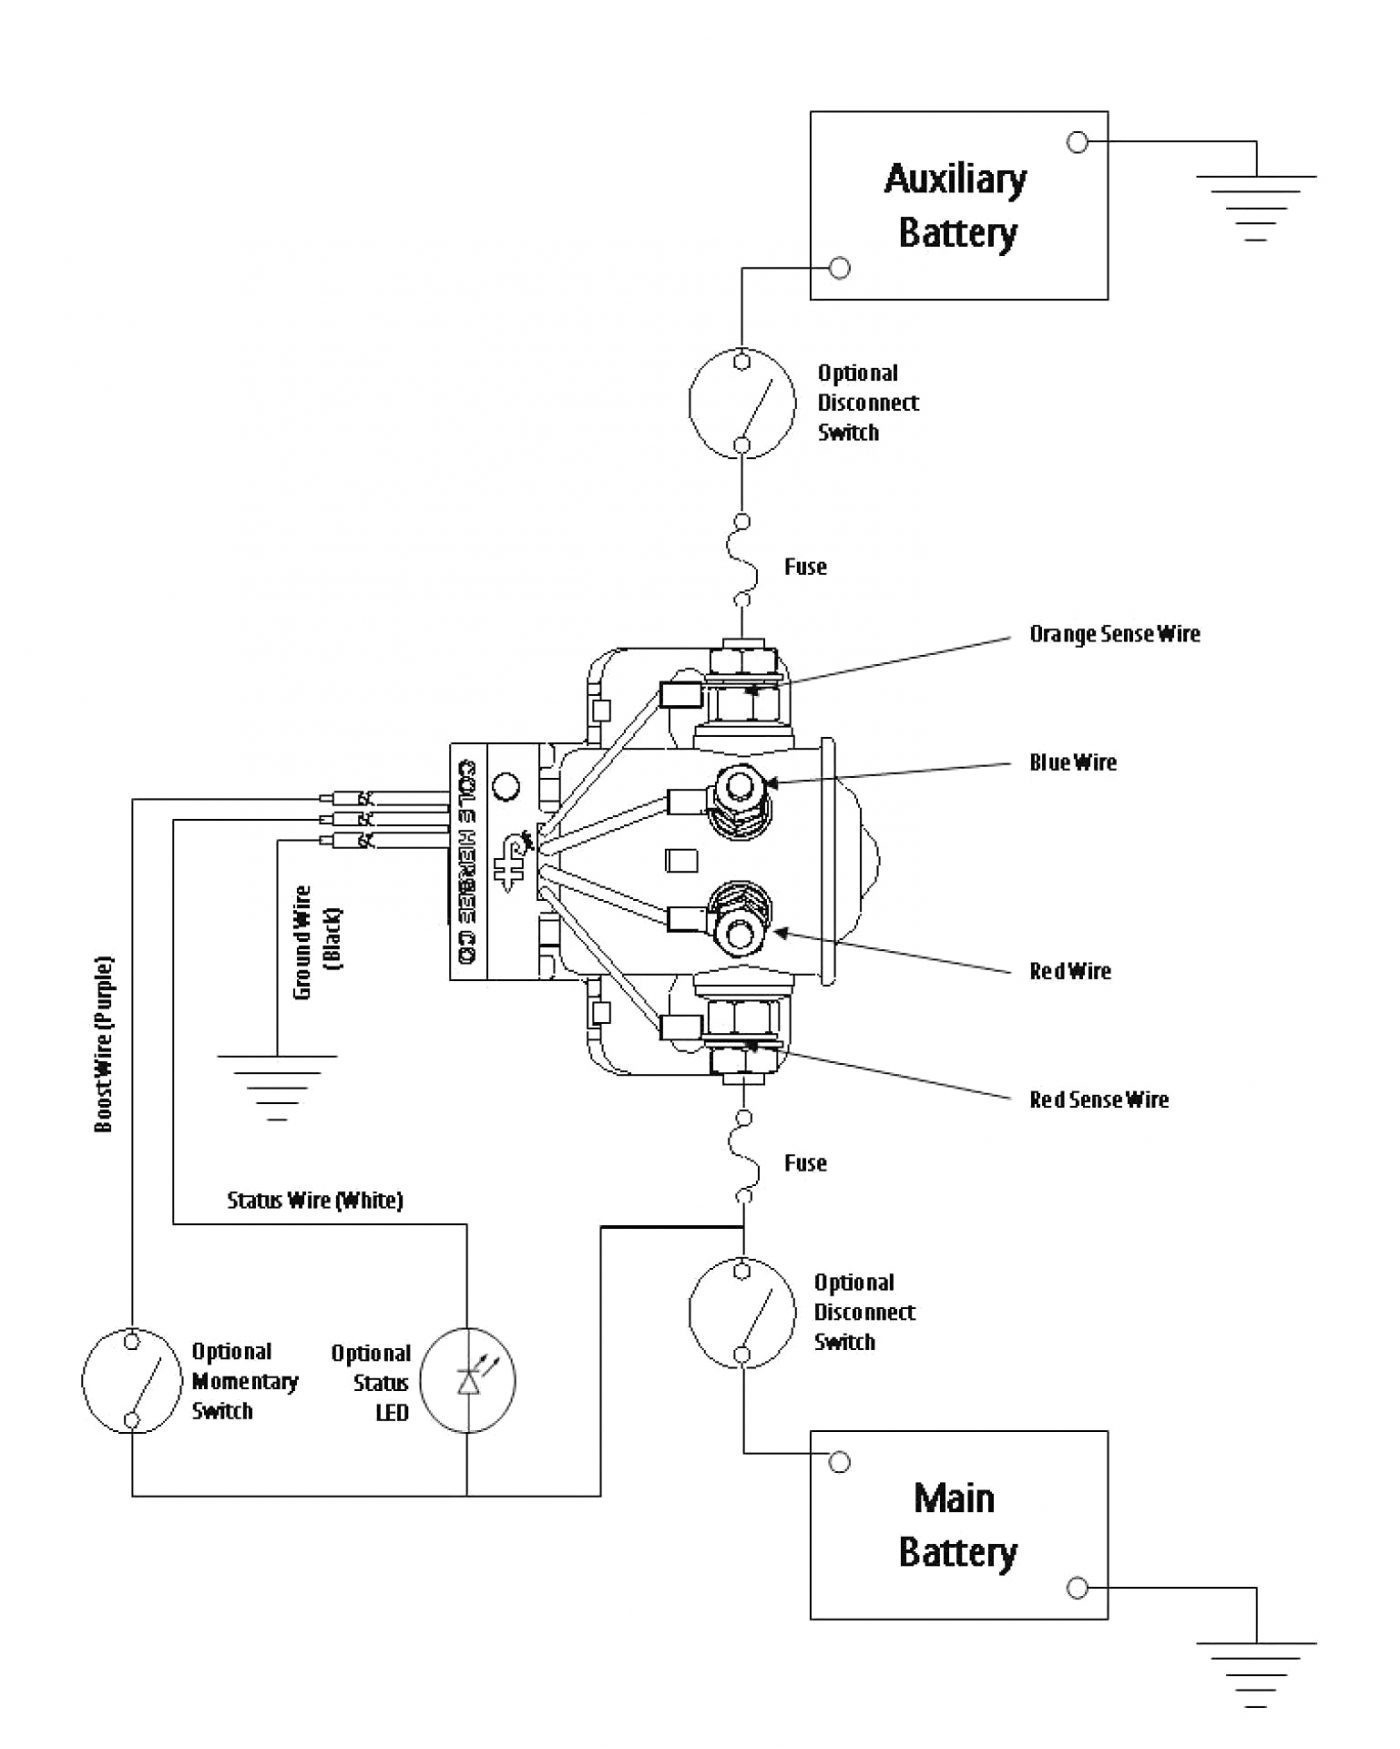 ac disconnect wiring diagram - wiring diagram for ac disconnect save wiring  diagram for isolator switch